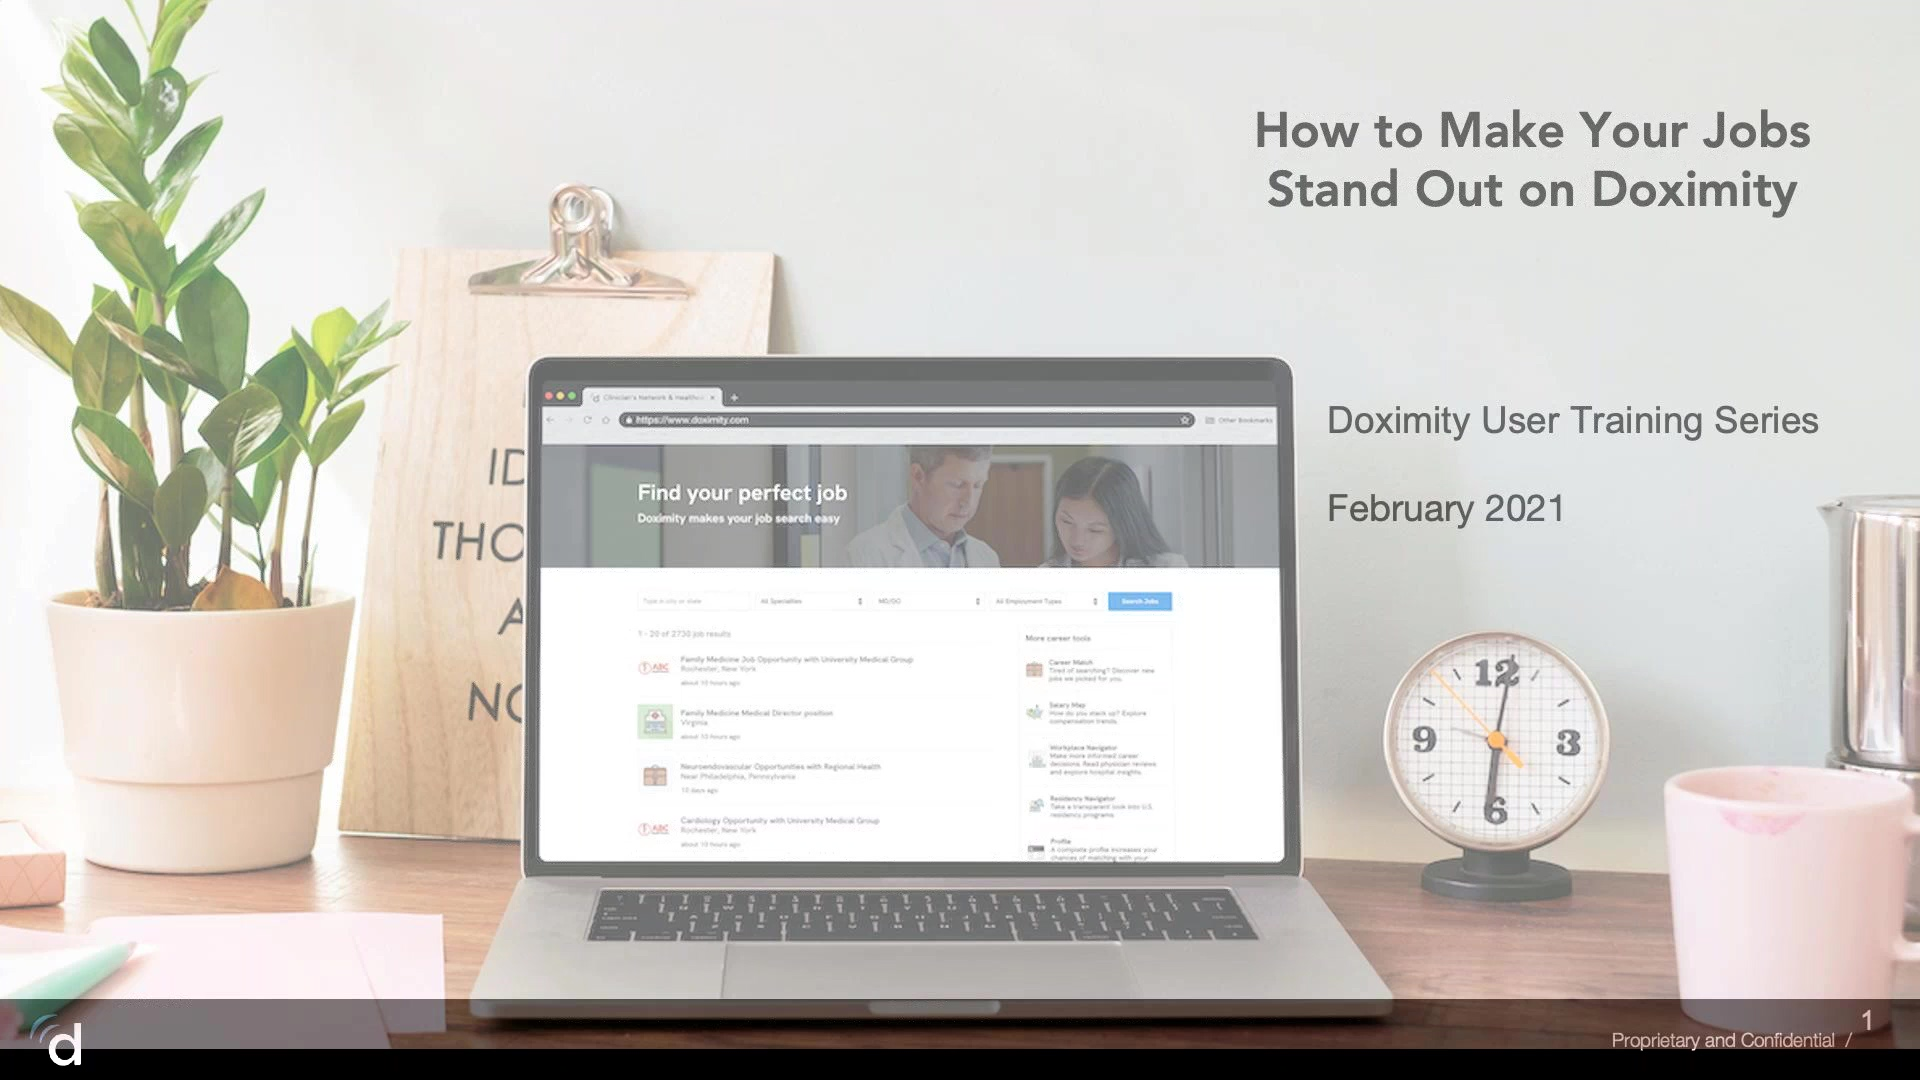 Feb 2021- How to Make Your Jobs Stand Out - Recording